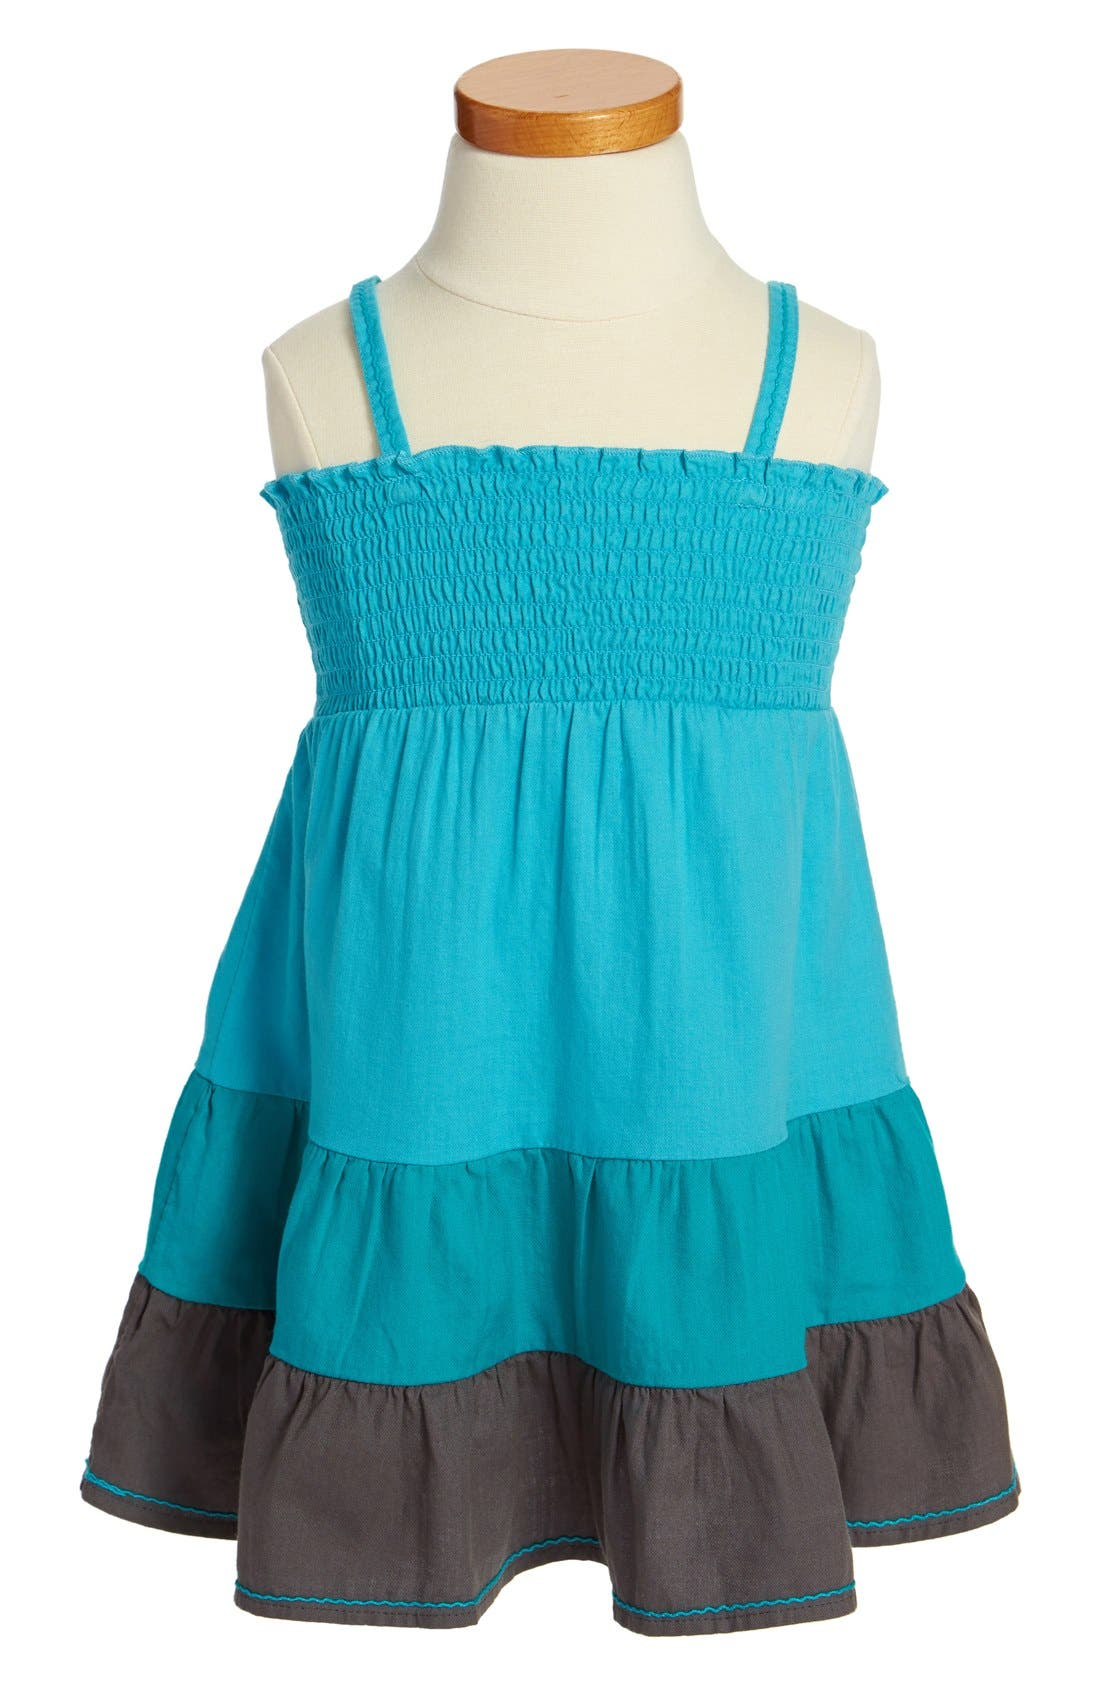 Alternate Image 1 Selected - Roxy 'Block Party' Sleeveless Dress (Toddler Girls)